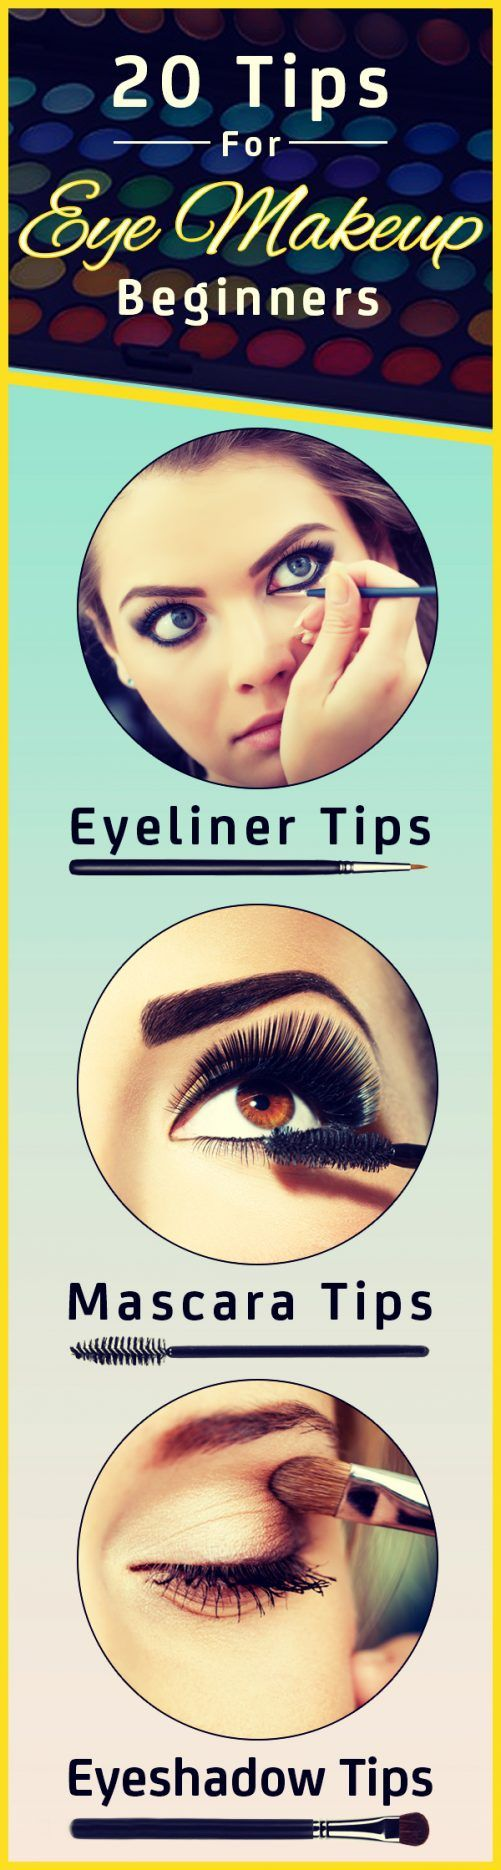 20 Tips for eye makeup beginners 01